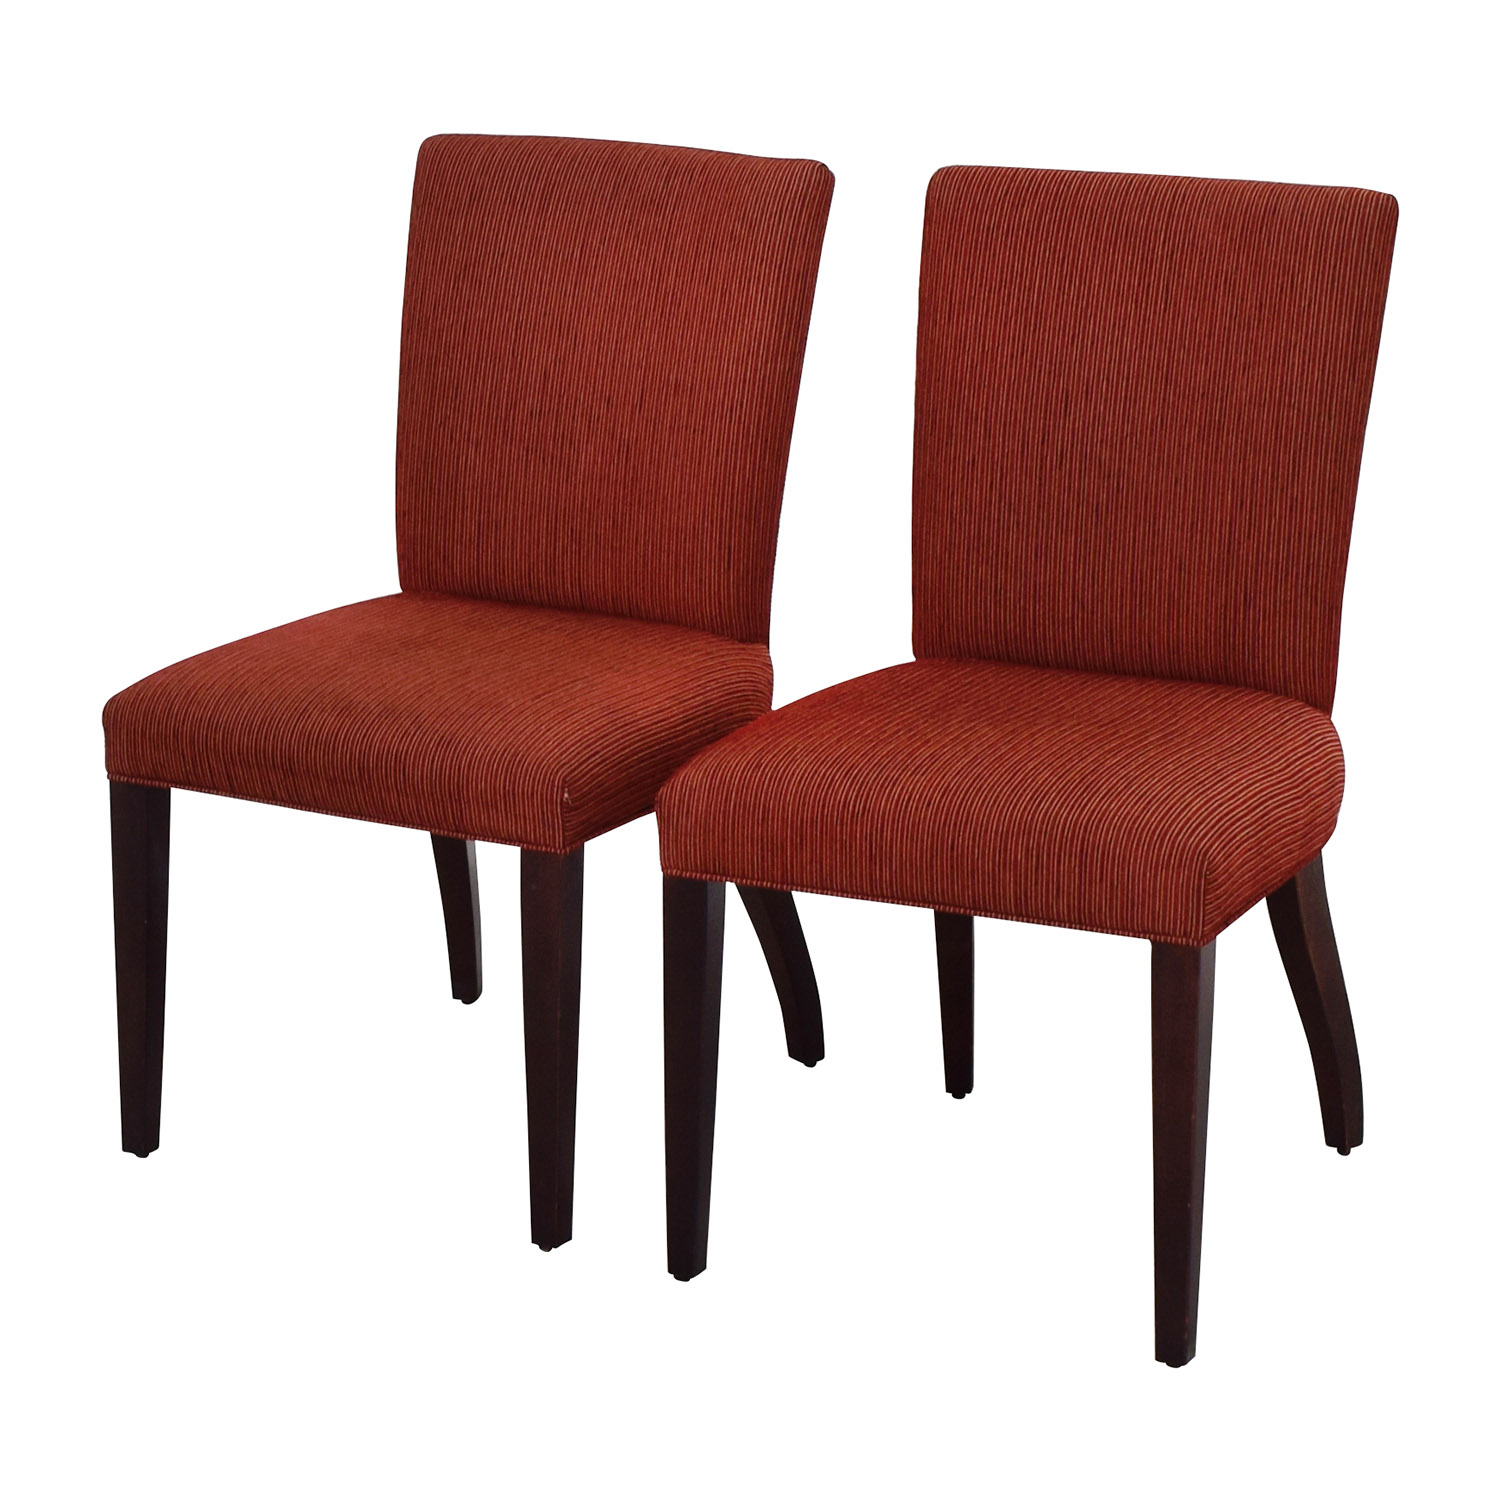 room and board chair high top table chairs kitchen 83 off anssel rust dining